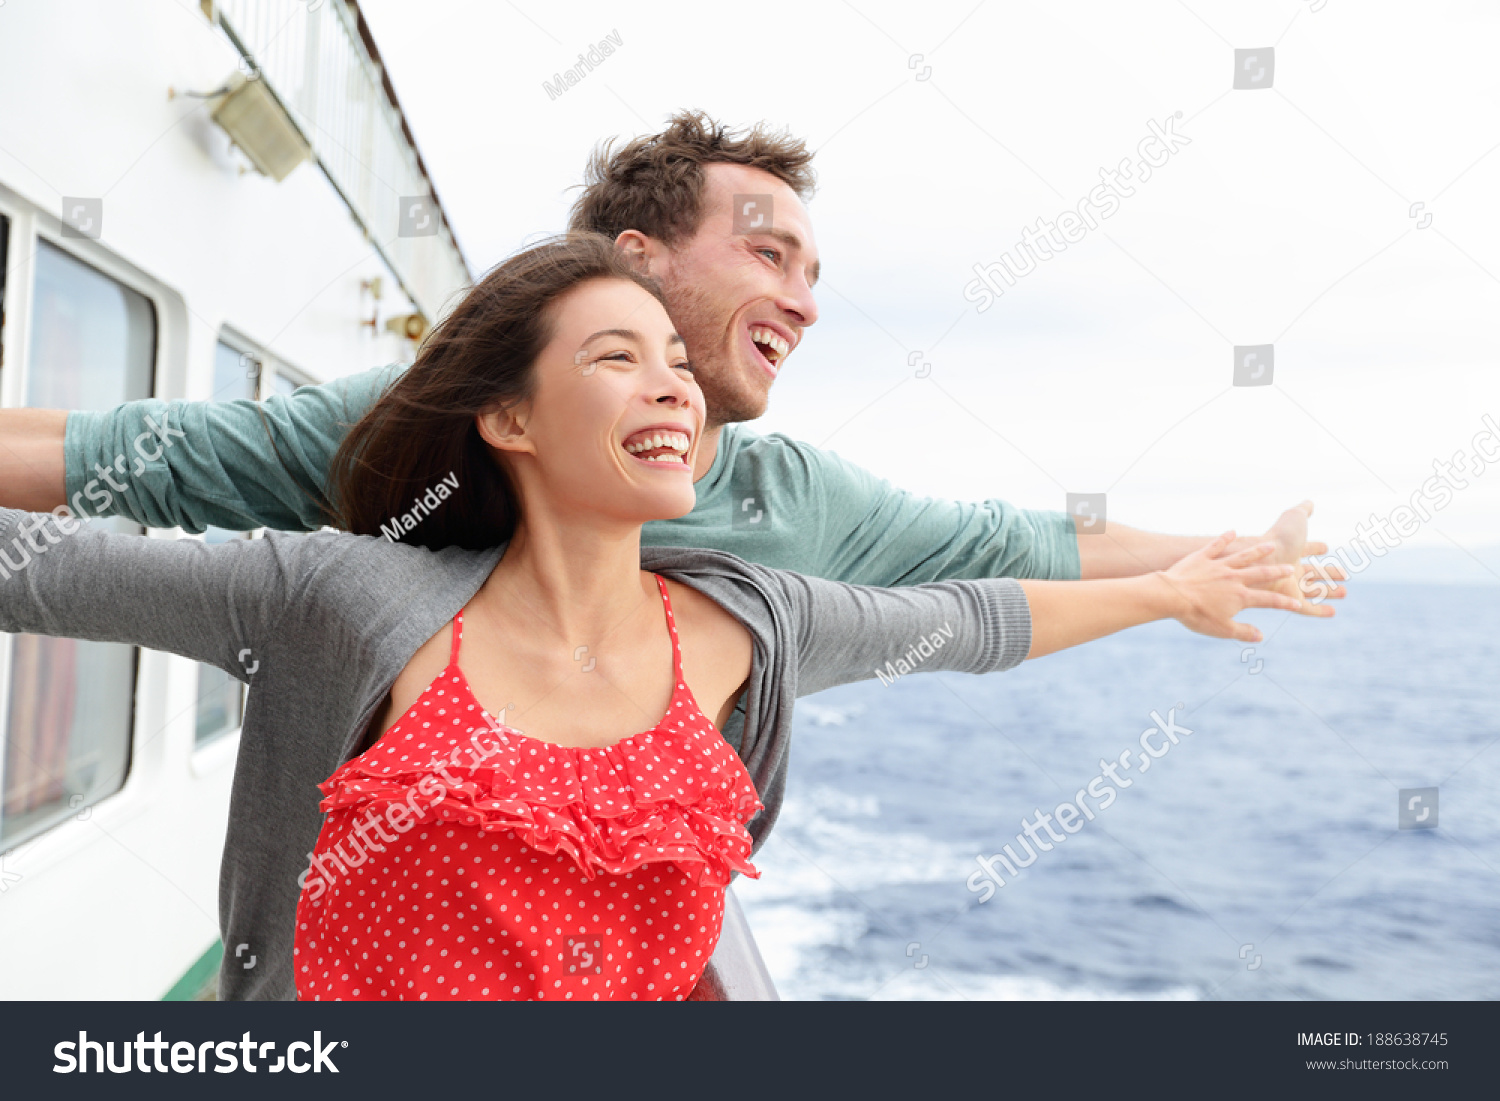 Romantic Couple Having Fun Laughing In Funny Pose On